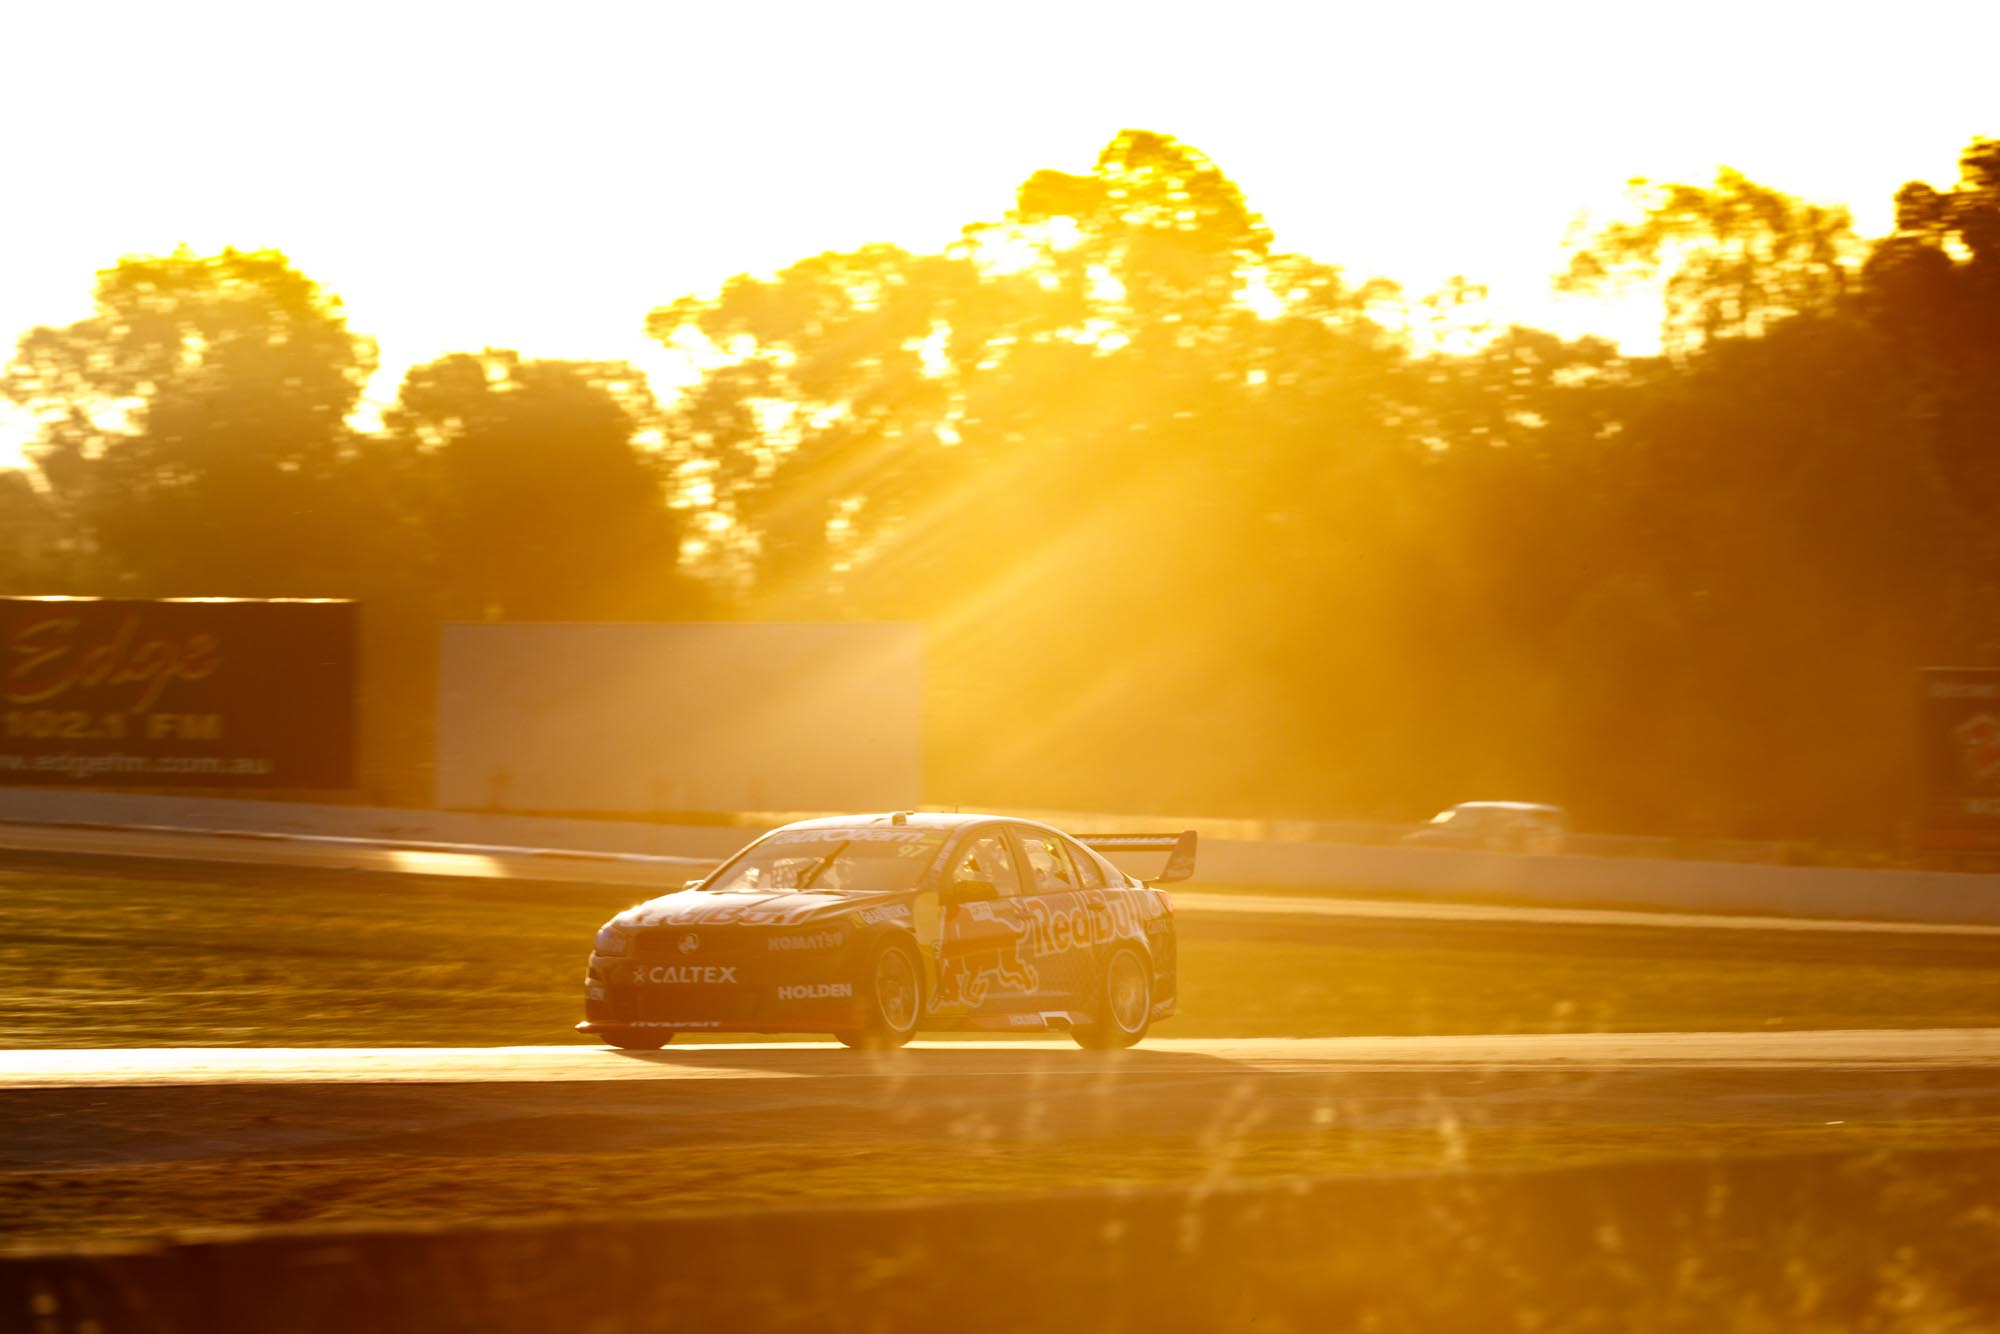 Jamie Whincup of Red Bull Racing Australia during the Woodstock Winton SuperSprint,  at the Winton Motor Raceway, Winton, Victoria, May 20, 2016.